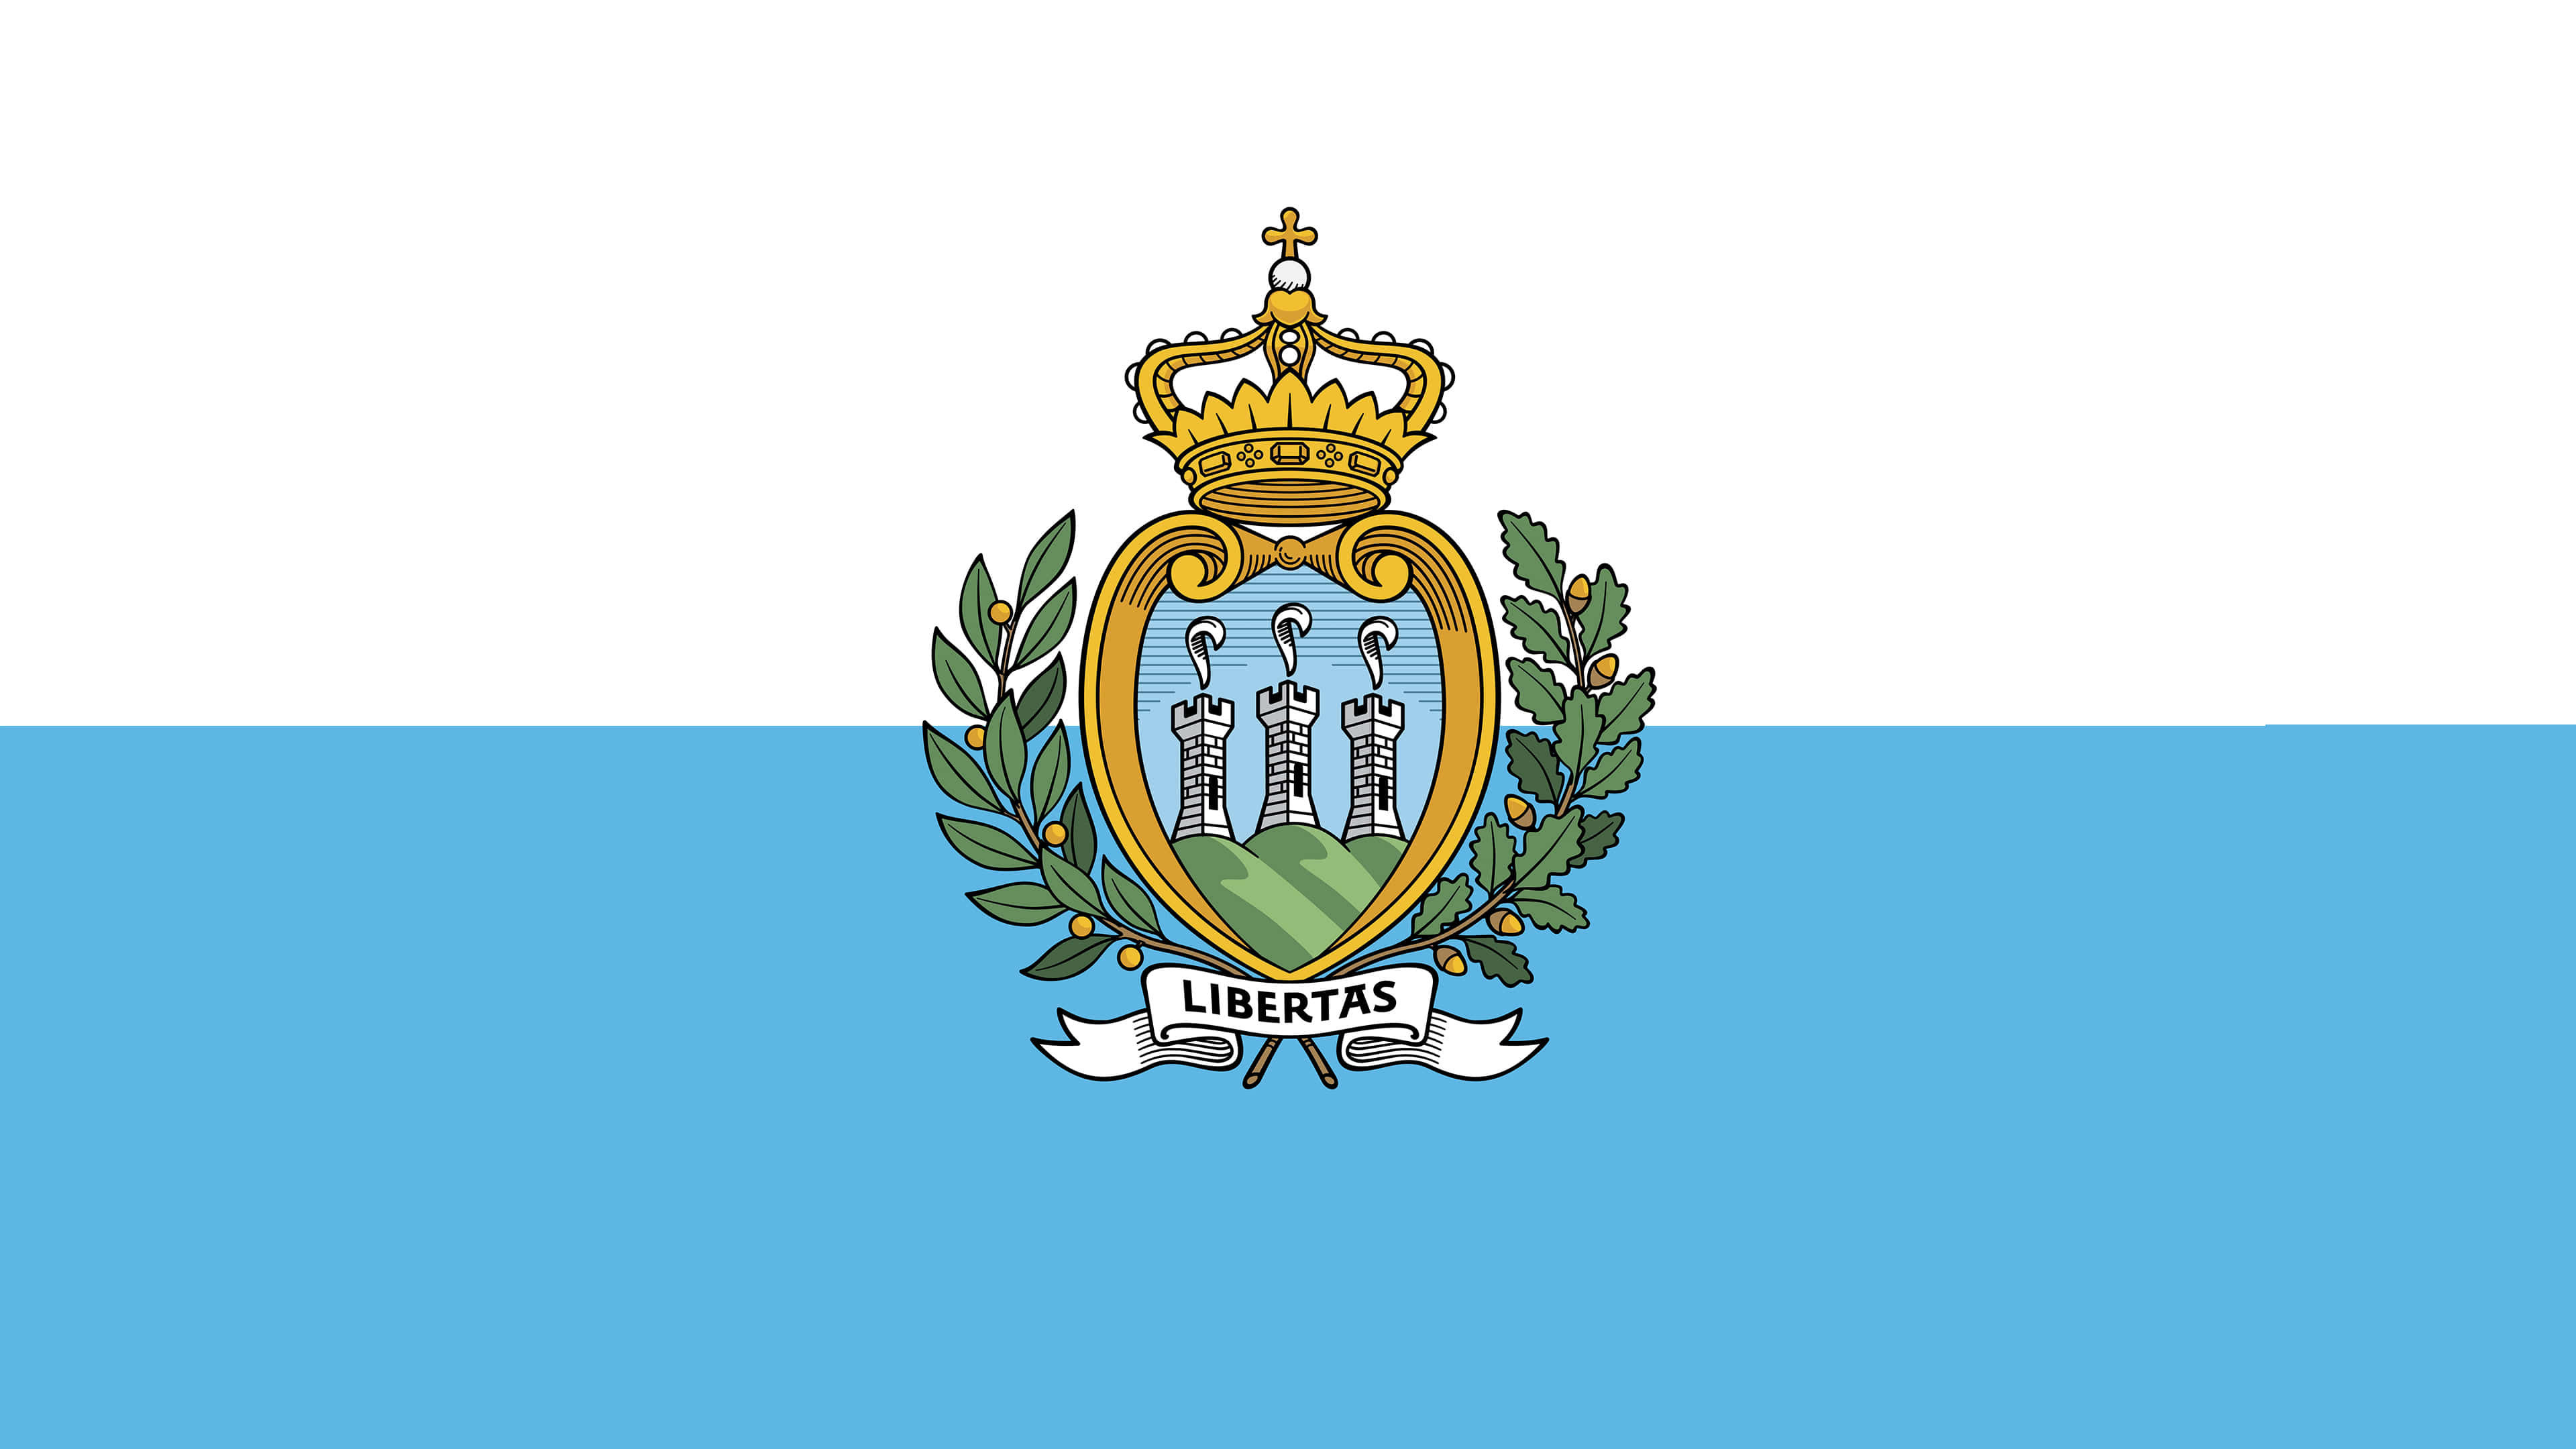 san marino flag uhd 4k wallpaper